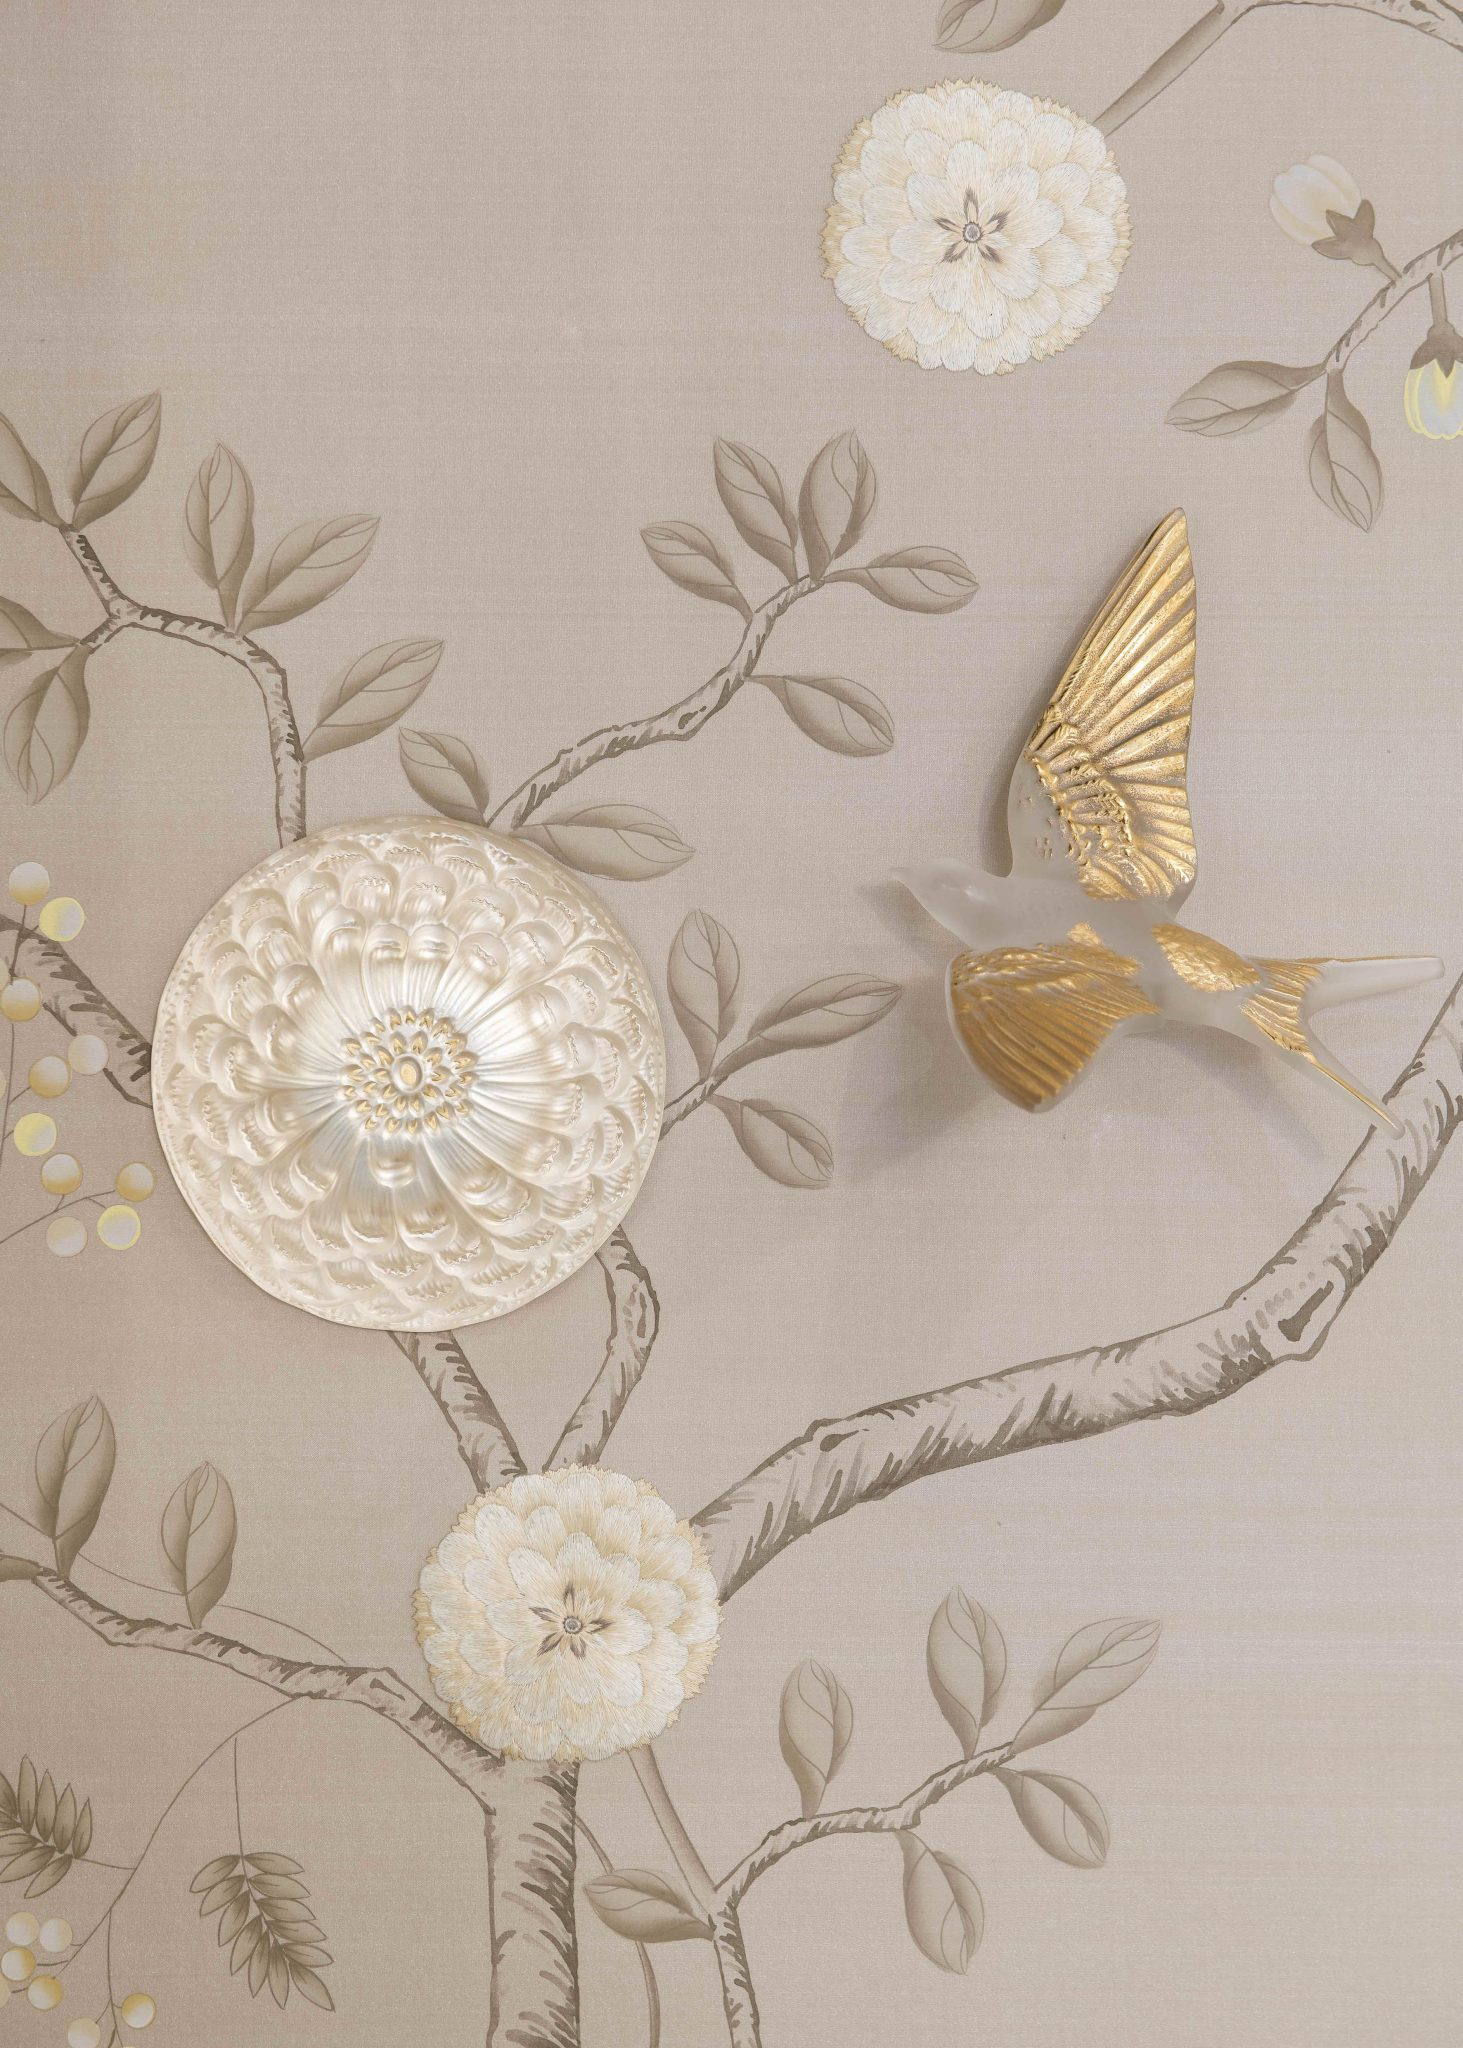 Lalique And Fromental Collaborate On Hirondelles